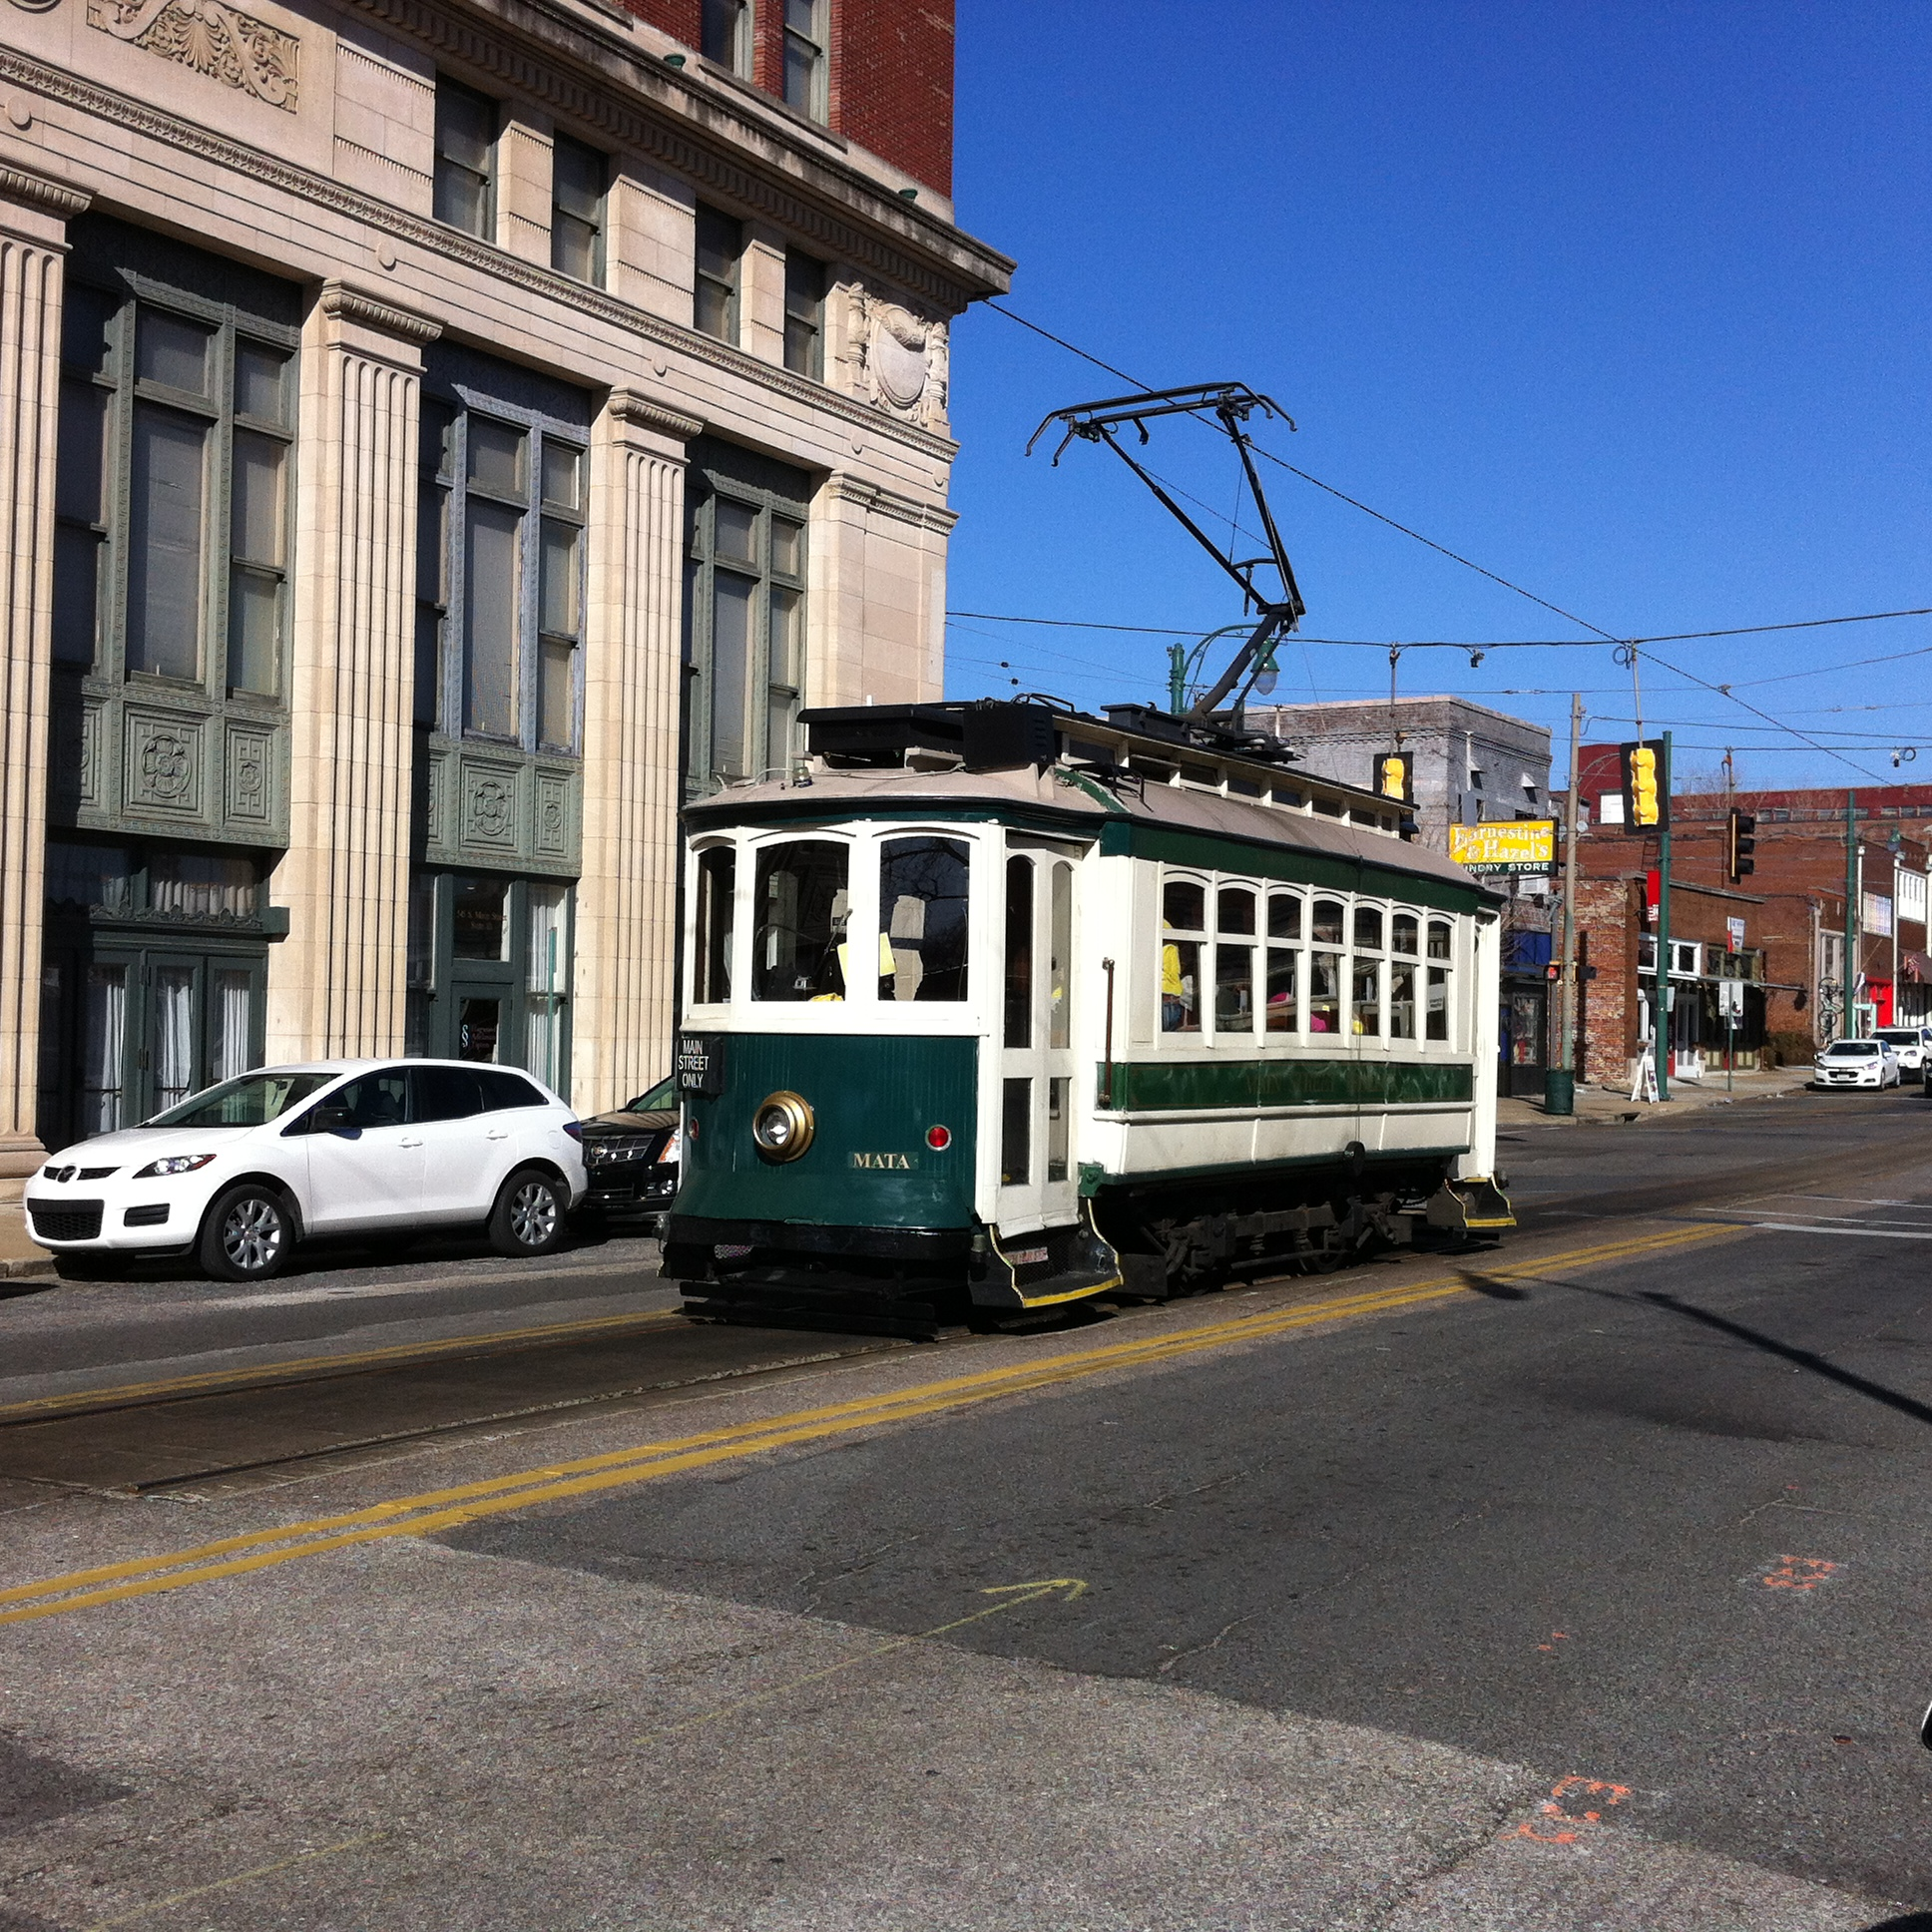 While the trolley cars are cute they aren't too practical when it come to large groups of people wanting a ride after a basketball or baseball game or when there is something on at the convention centre.